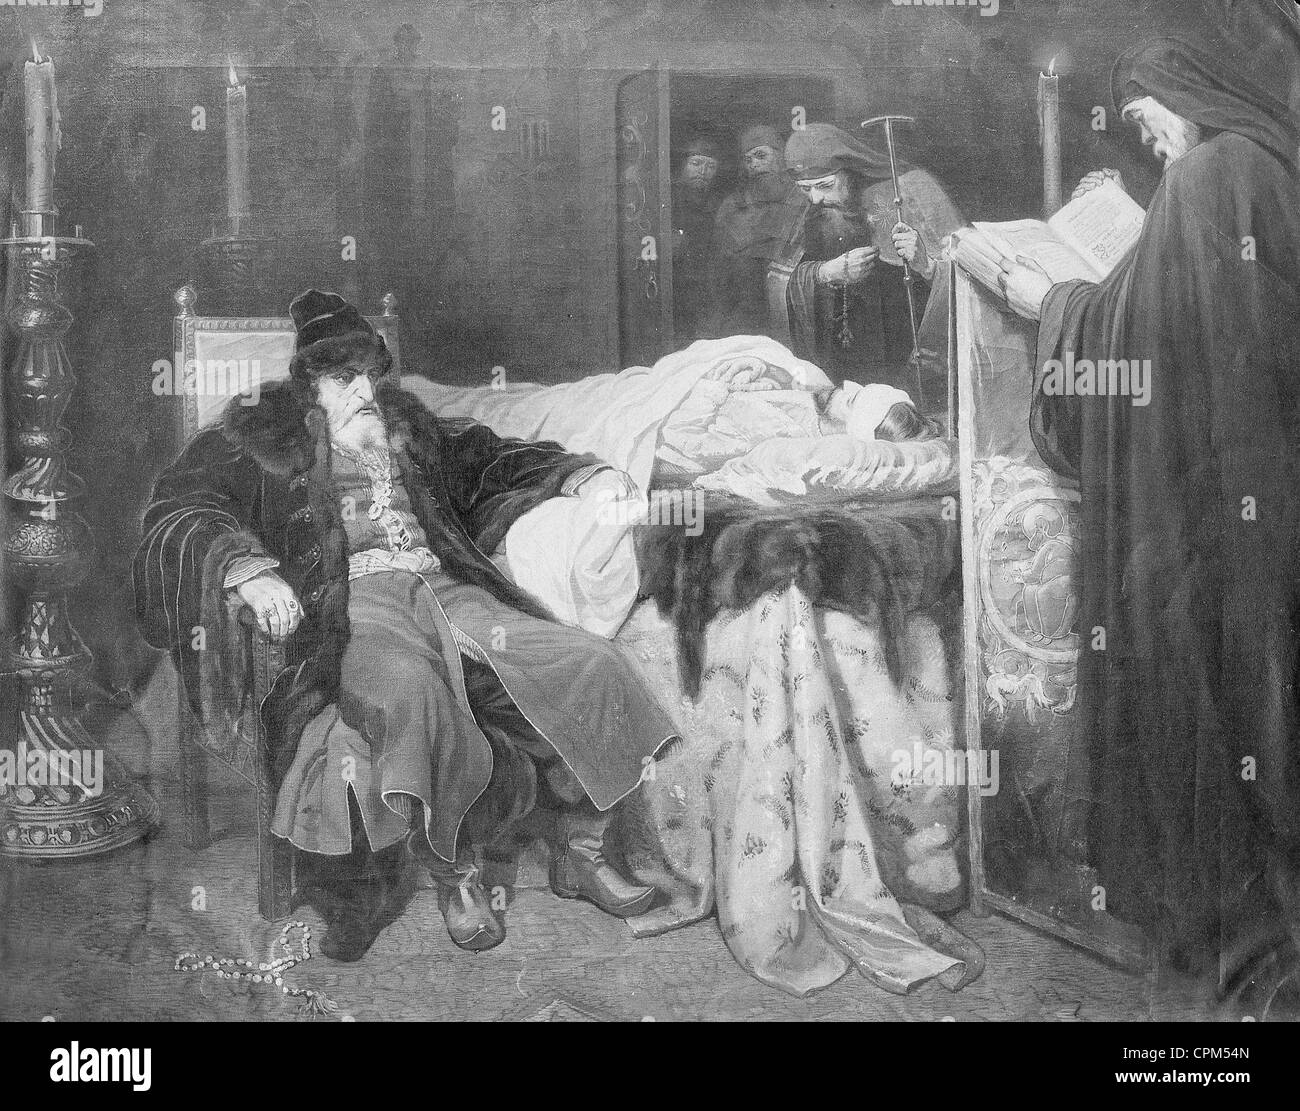 Ivan the Terrible at the dead body of his son - Stock Image